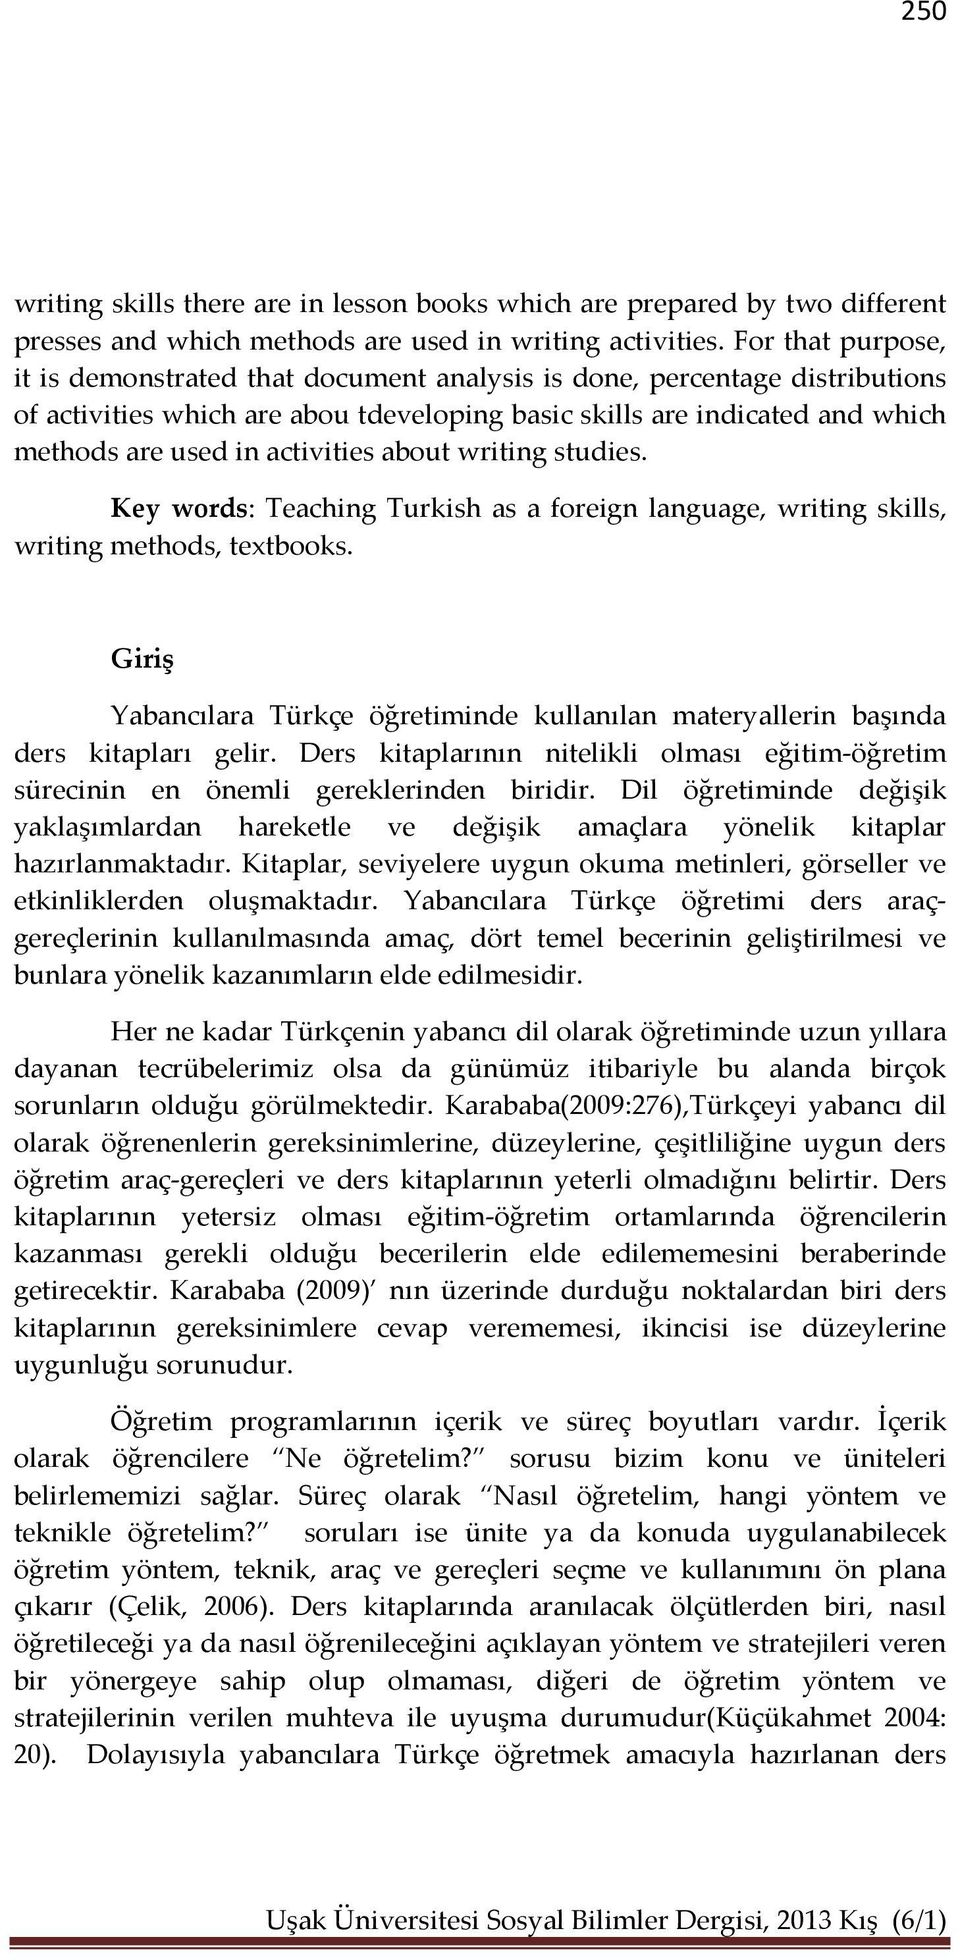 activities about writing studies. Key words: Teaching Turkish as a foreign language, writing skills, writing methods, textbooks.